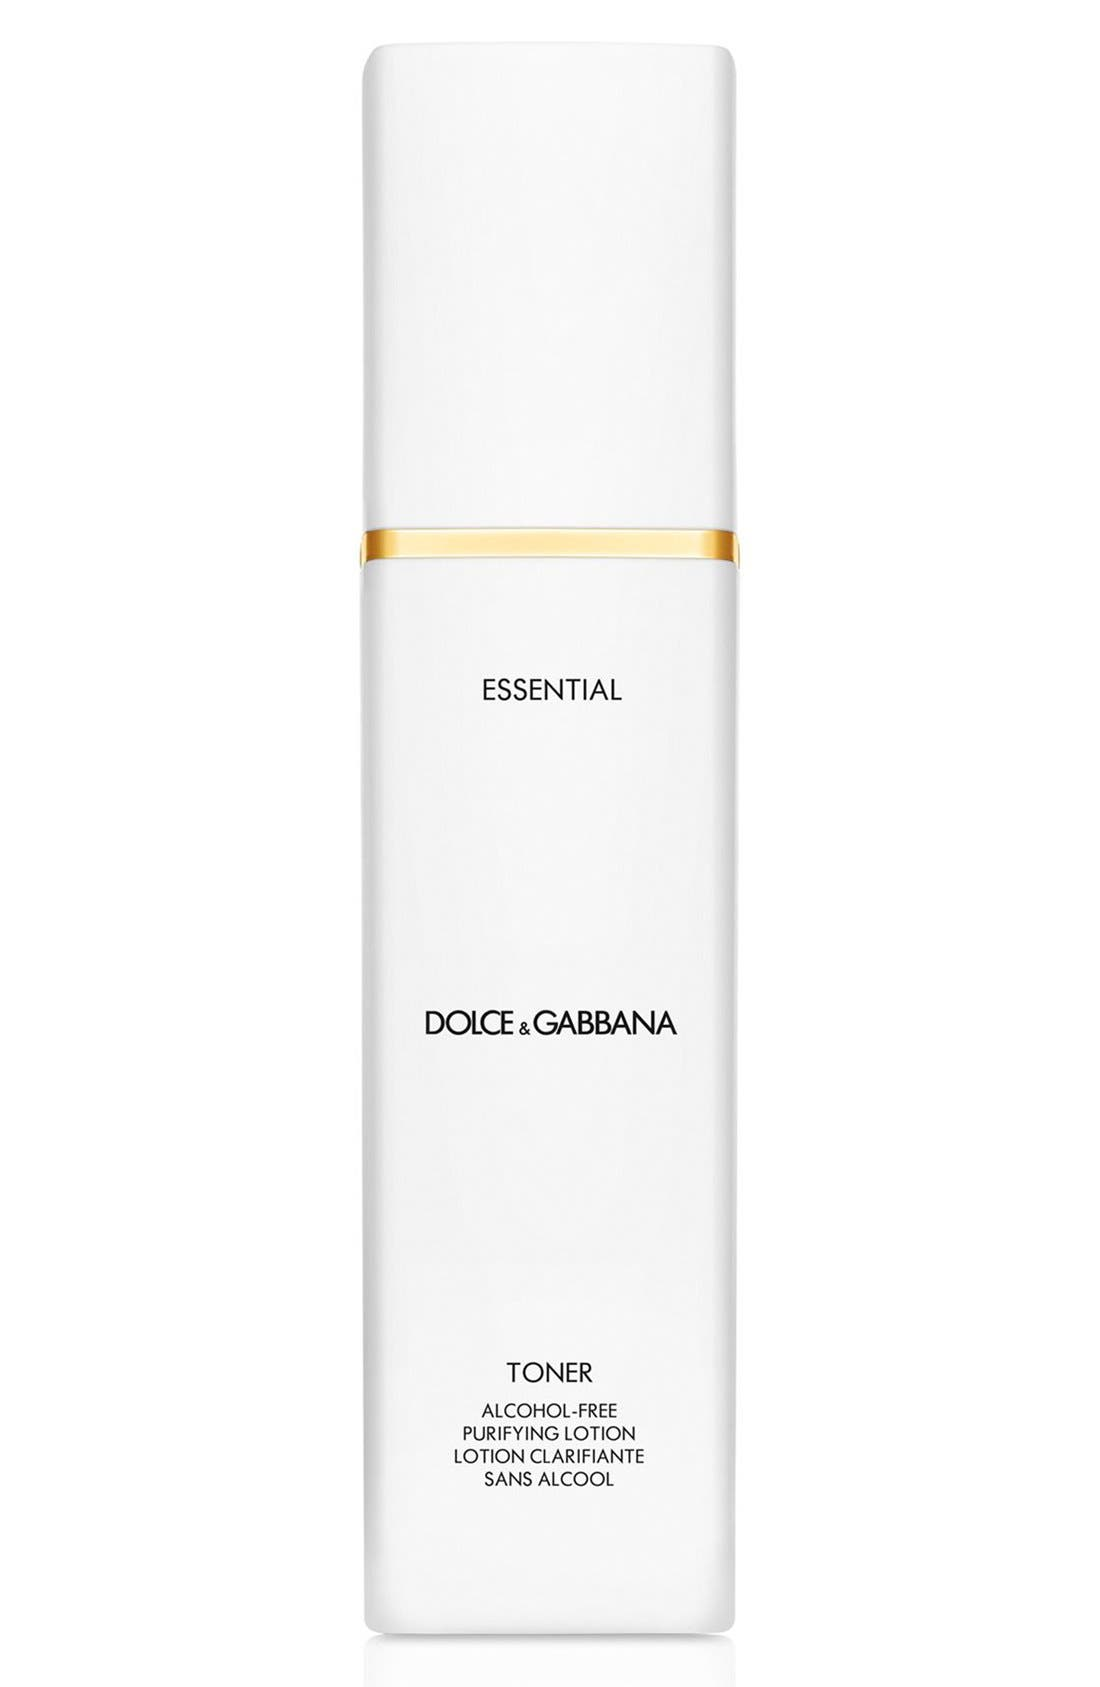 Dolce&Gabbana Beauty 'Essential' Toner Alcohol-Free Purifying Lotion